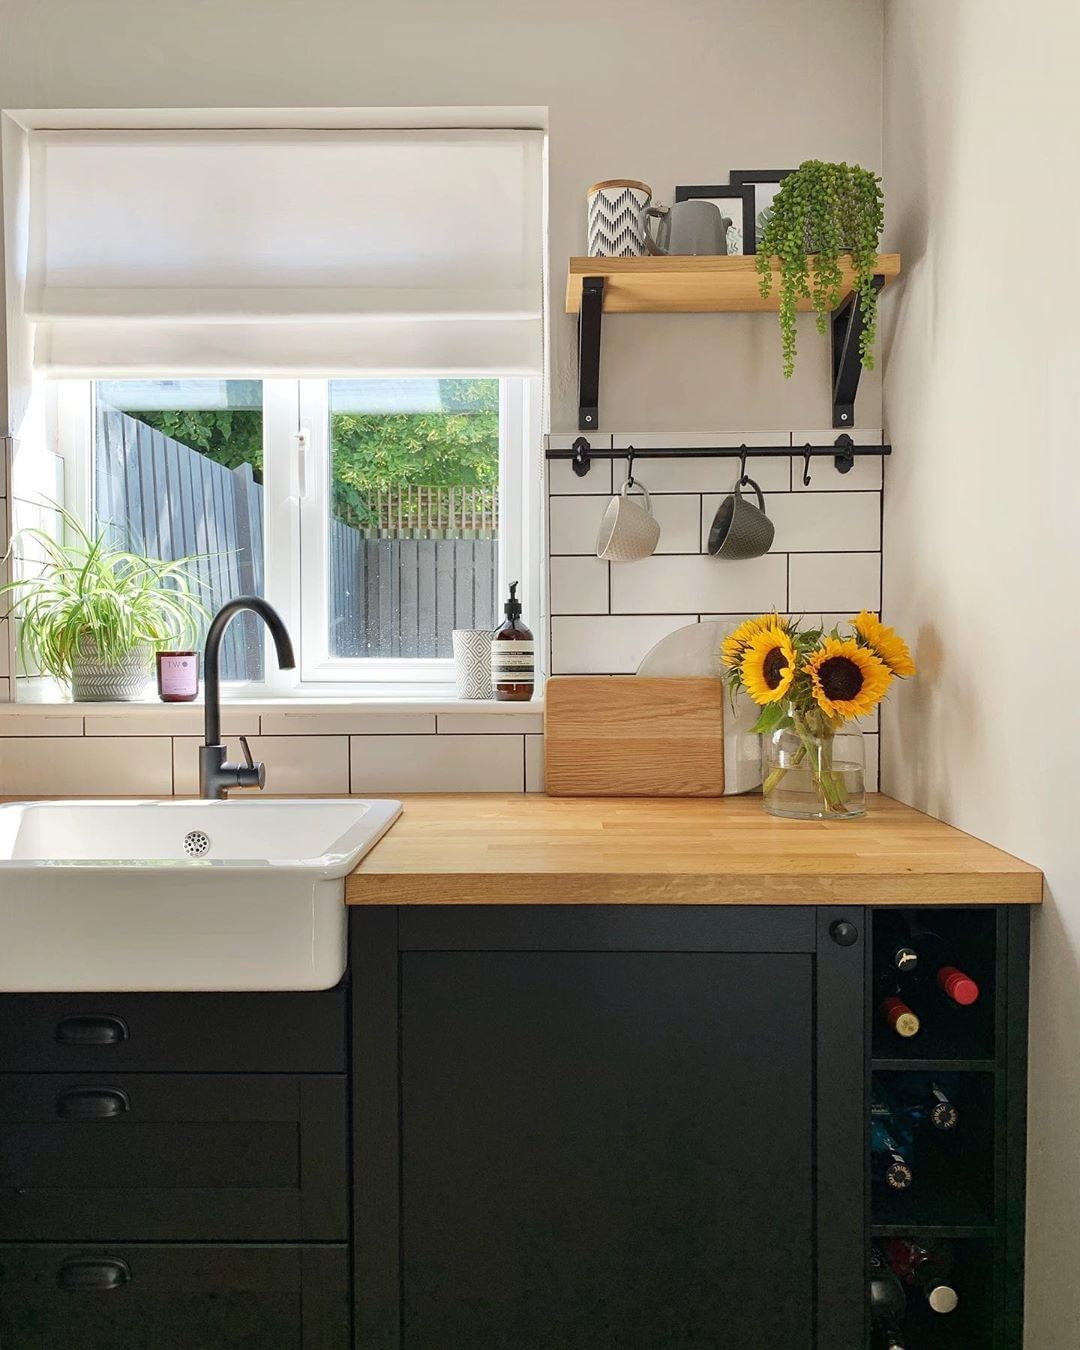 Ikea Australia On Instagram Create A Cosy Kitchen With Rustic Charm Using Lerhyttan Drawer And Door Fronts Re G Cosy Kitchen Kitchen Decor Rustic Kitchen